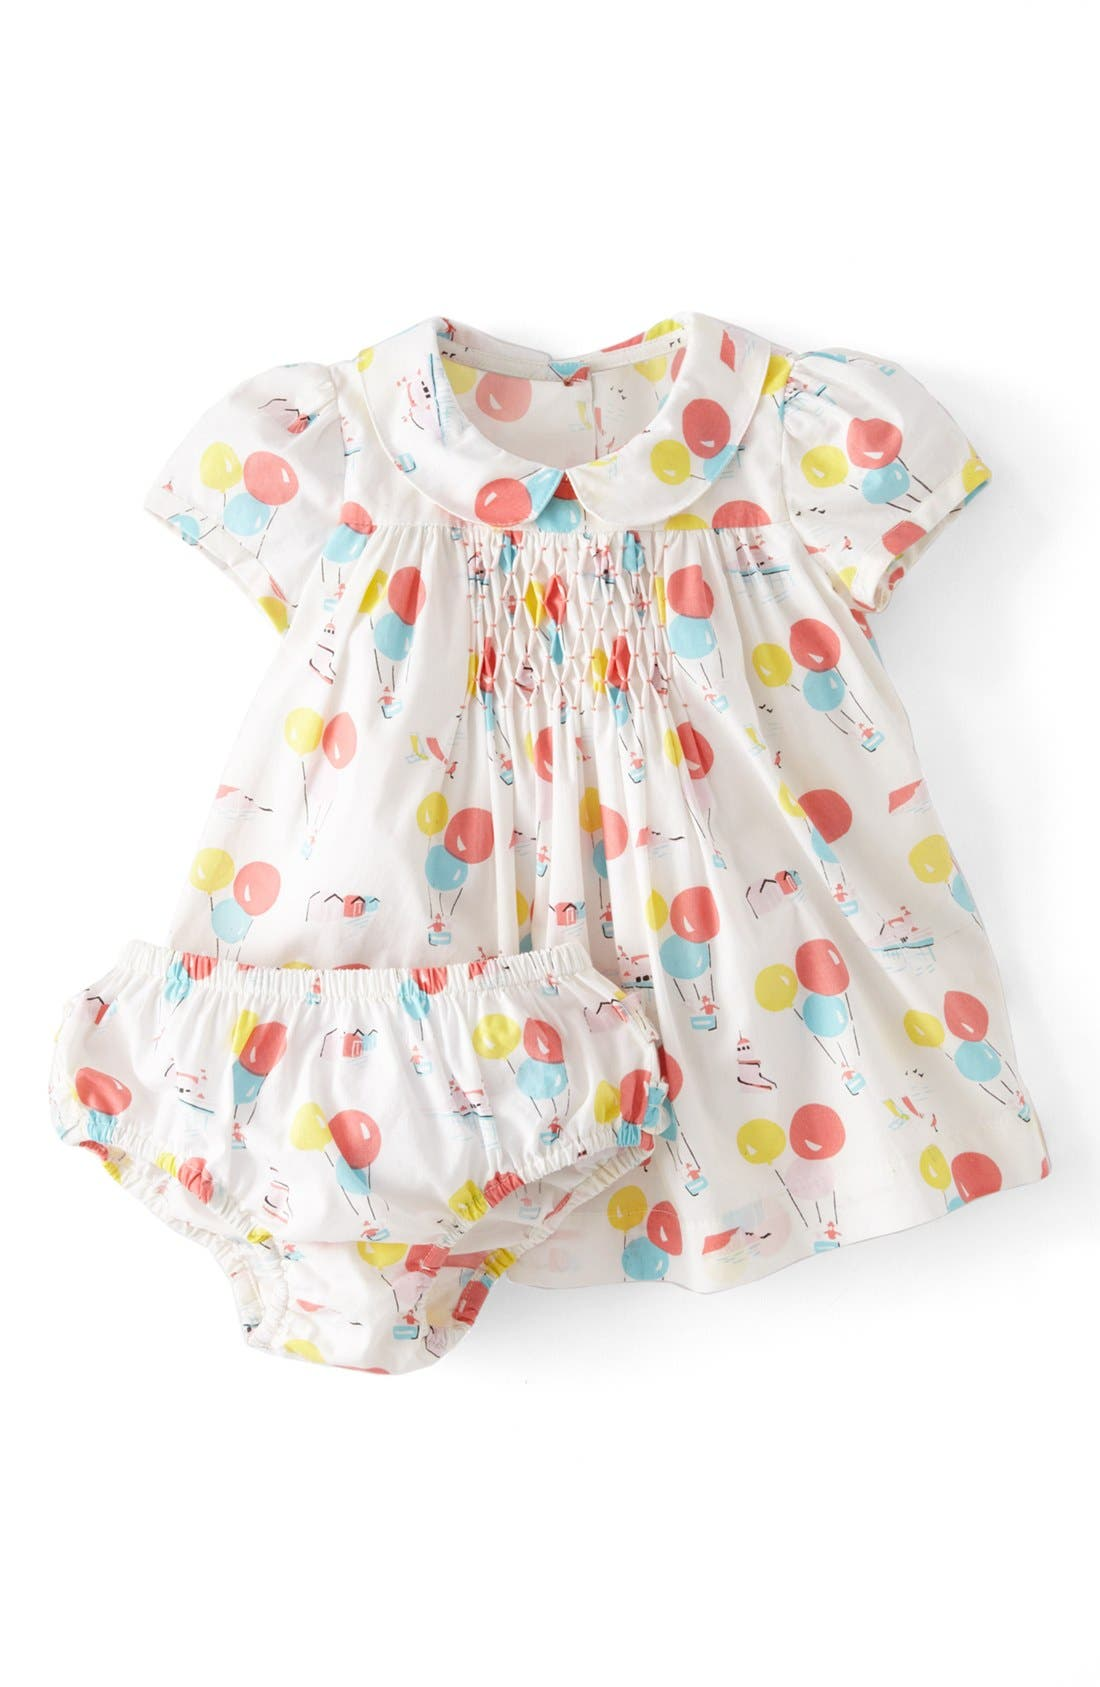 Alternate Image 1 Selected - Mini Boden 'Pretty Printed' Tea Dress (Baby Girls)